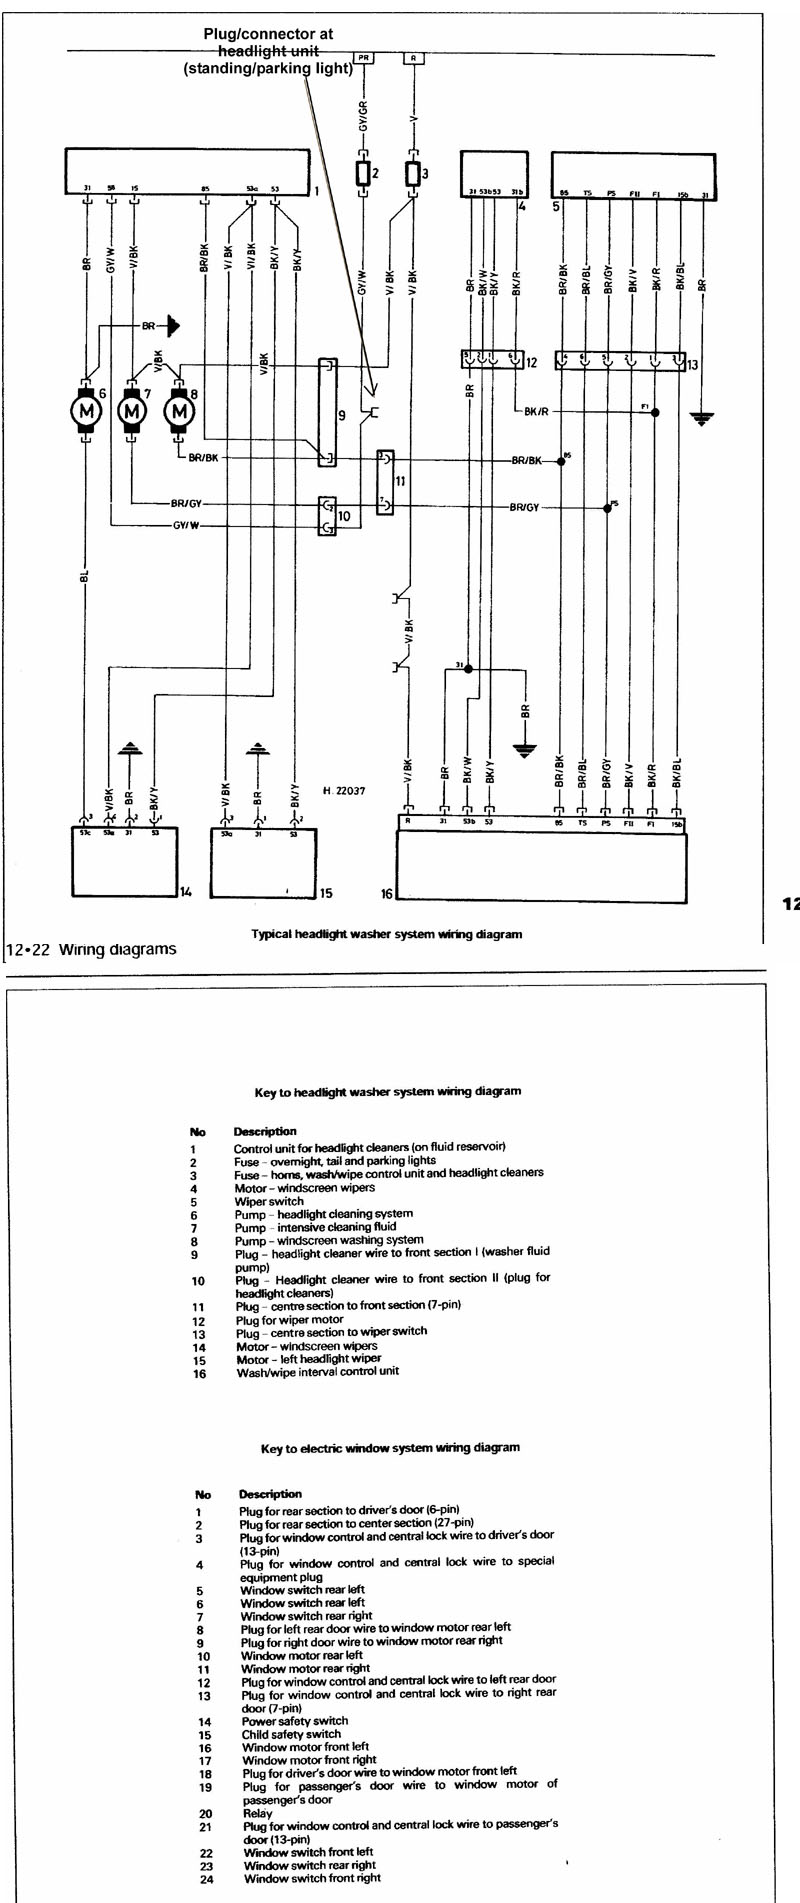 wrg 5568] m30 engine diagramM30 Engine Diagram #6